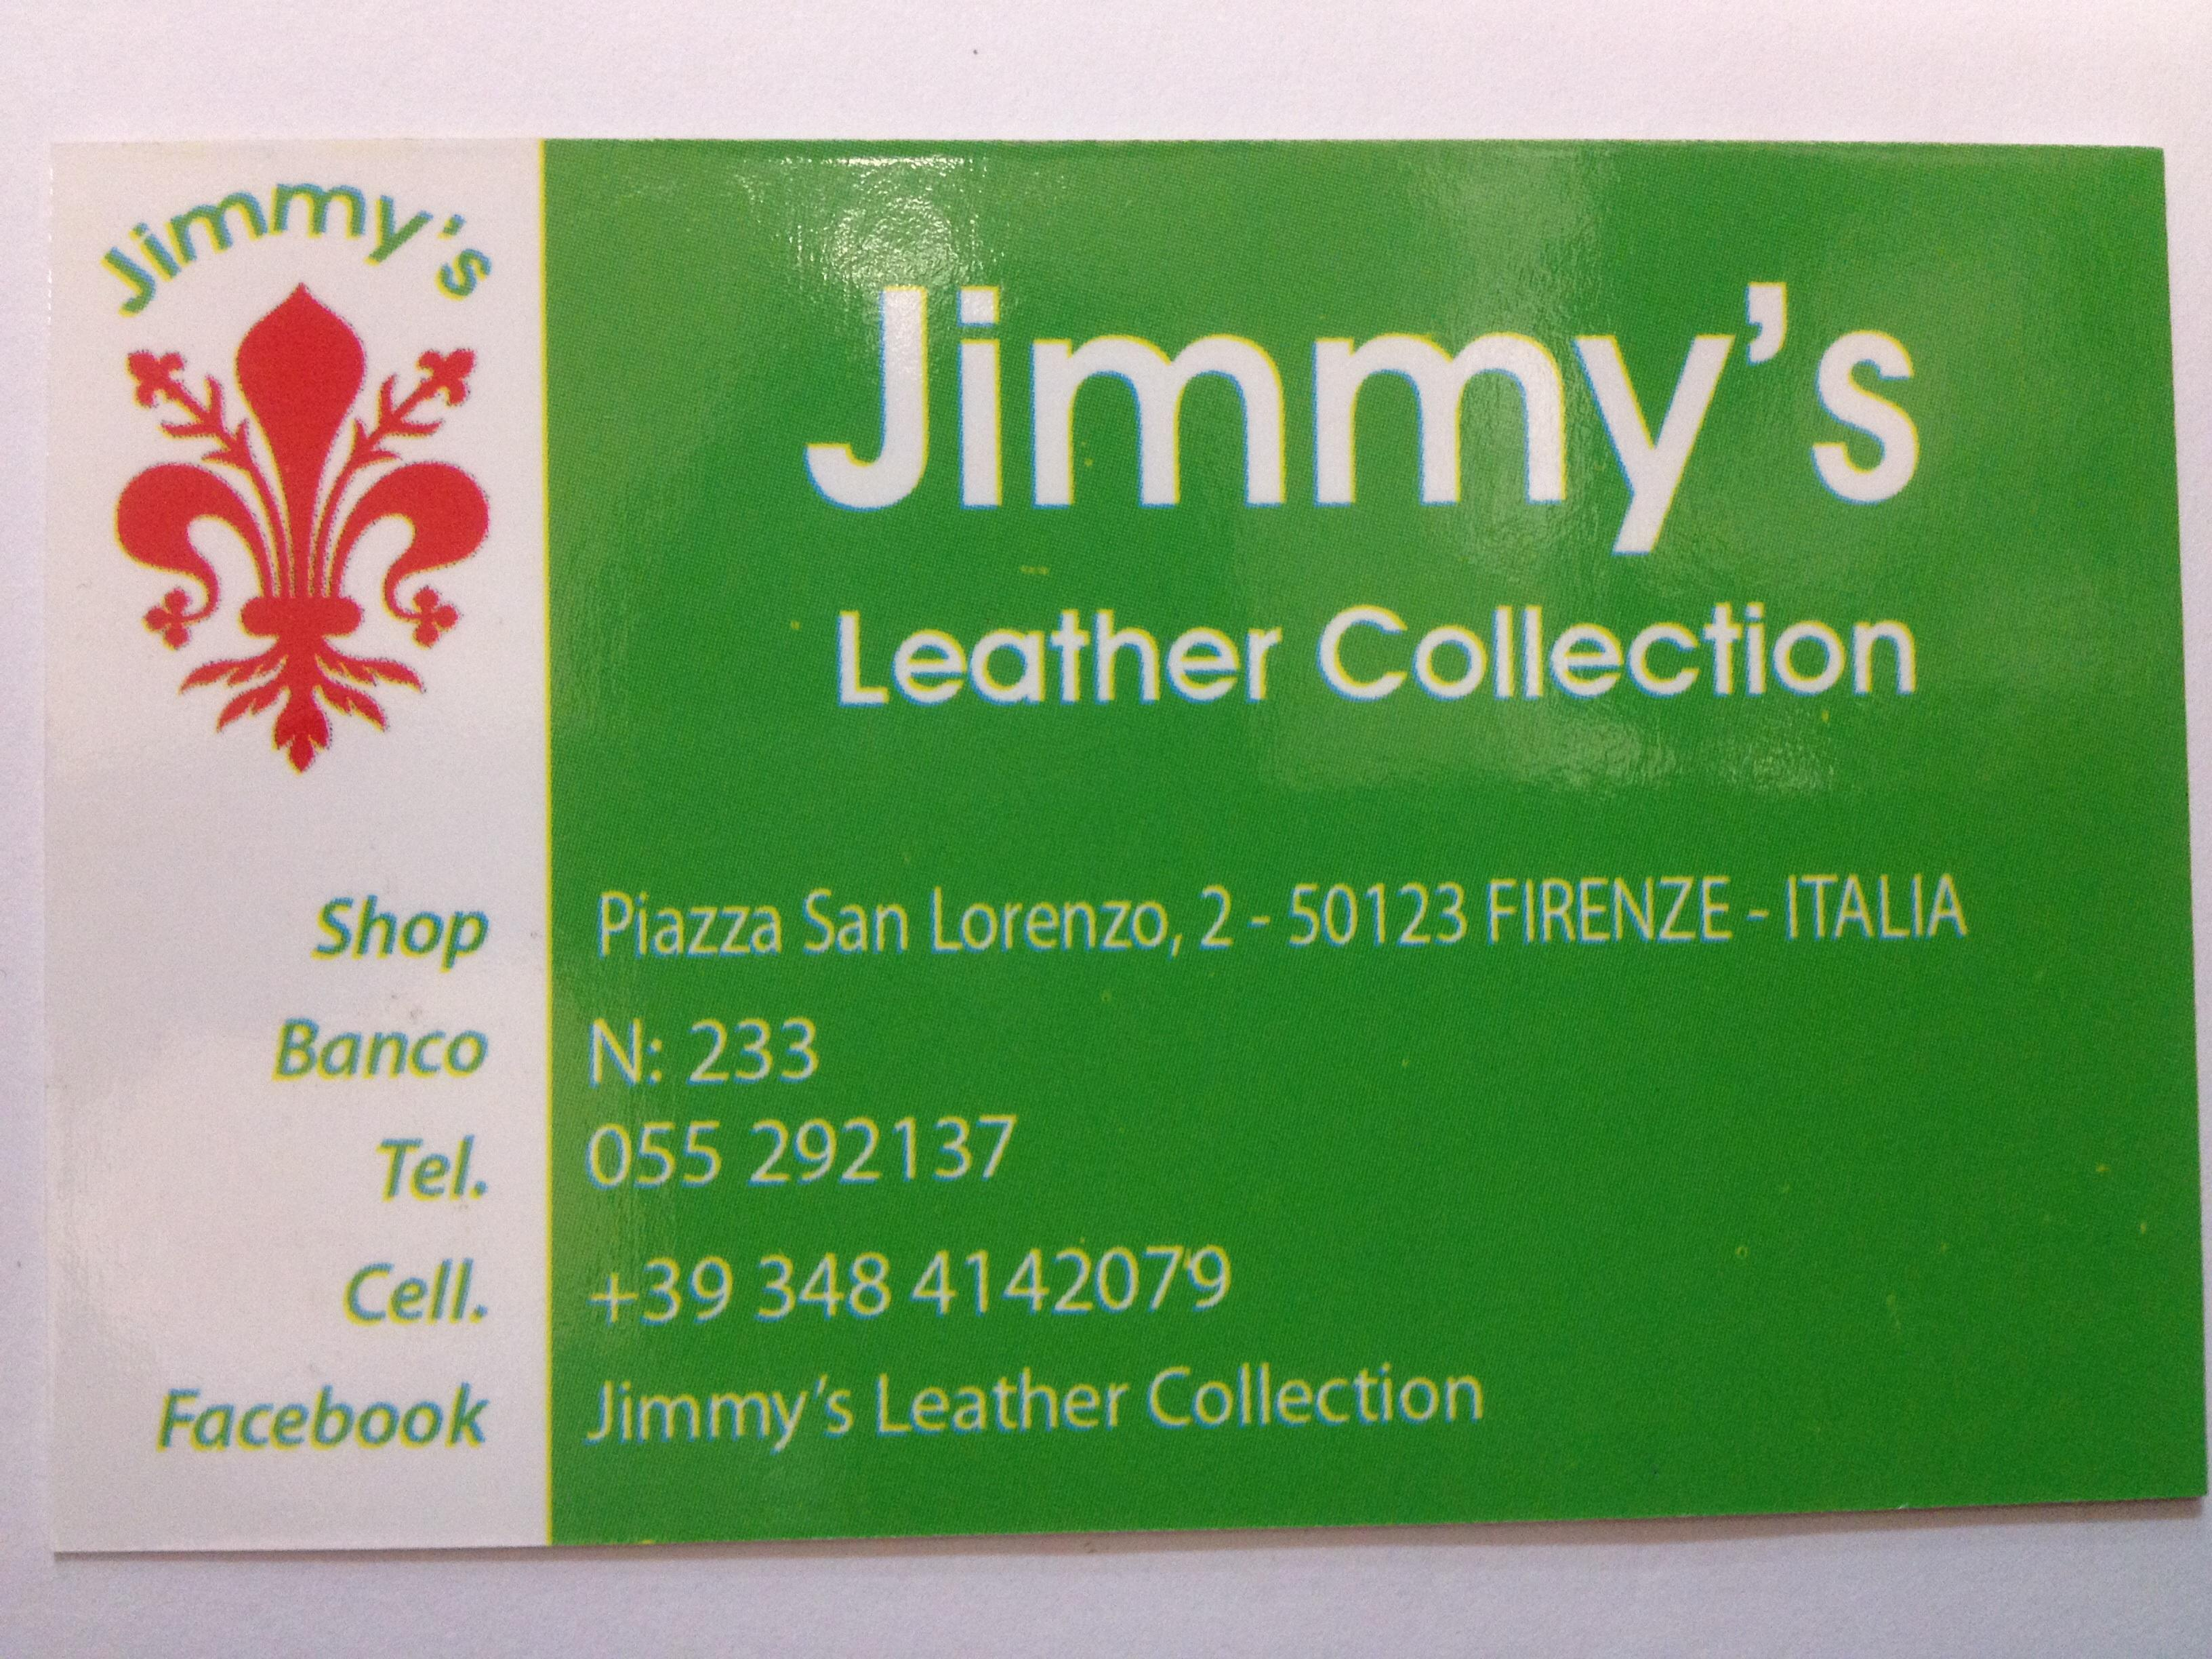 Jimmy's Leather Collection